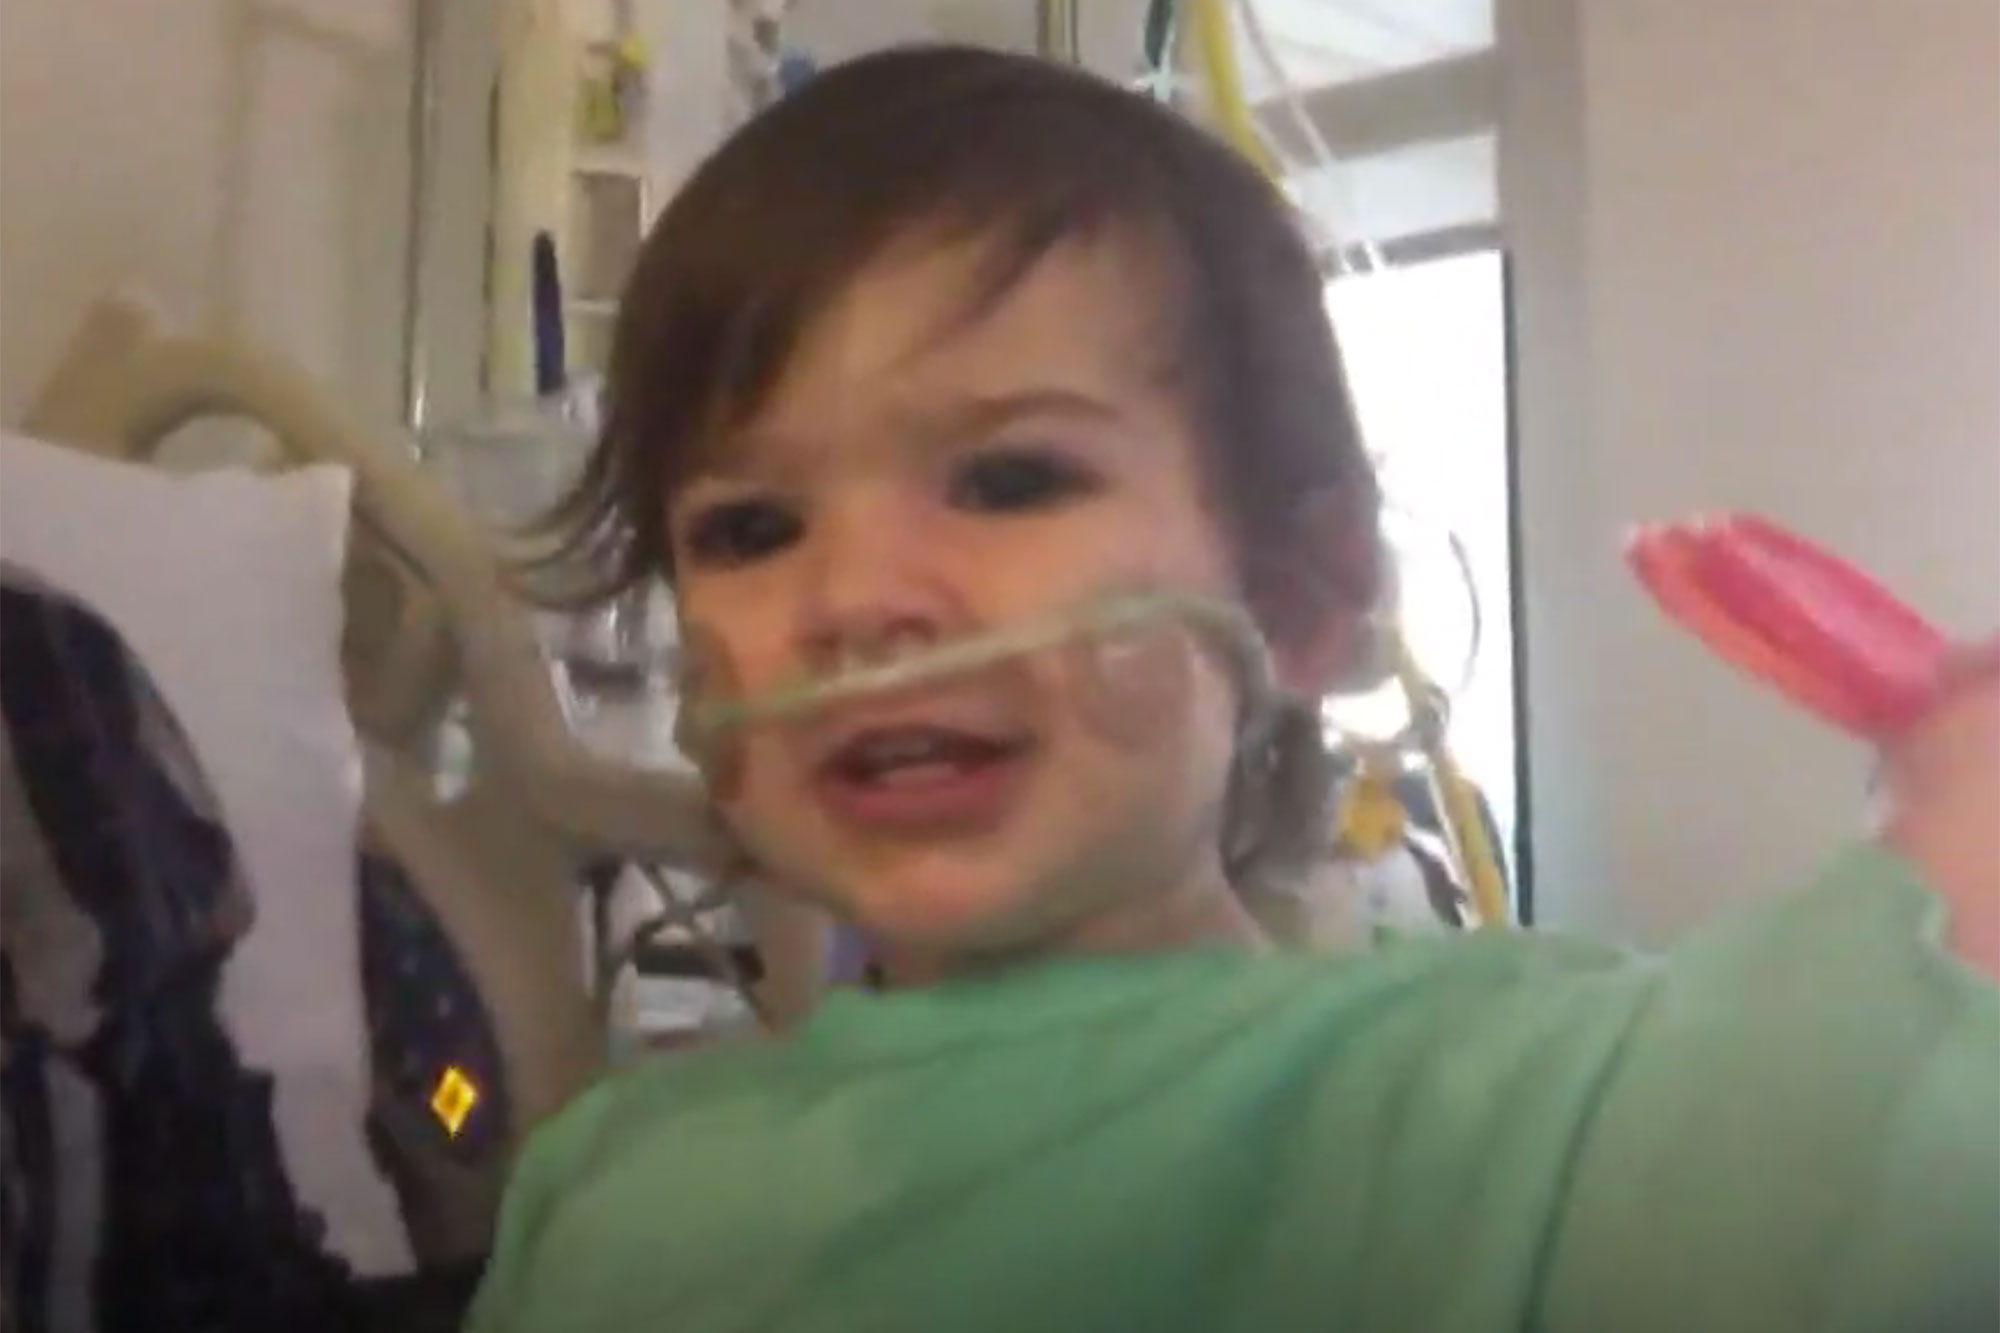 Common Respiratory Virus Lands 14-Month-Old in ICU: 'I Freaked Out,' Says Toddler's Mom